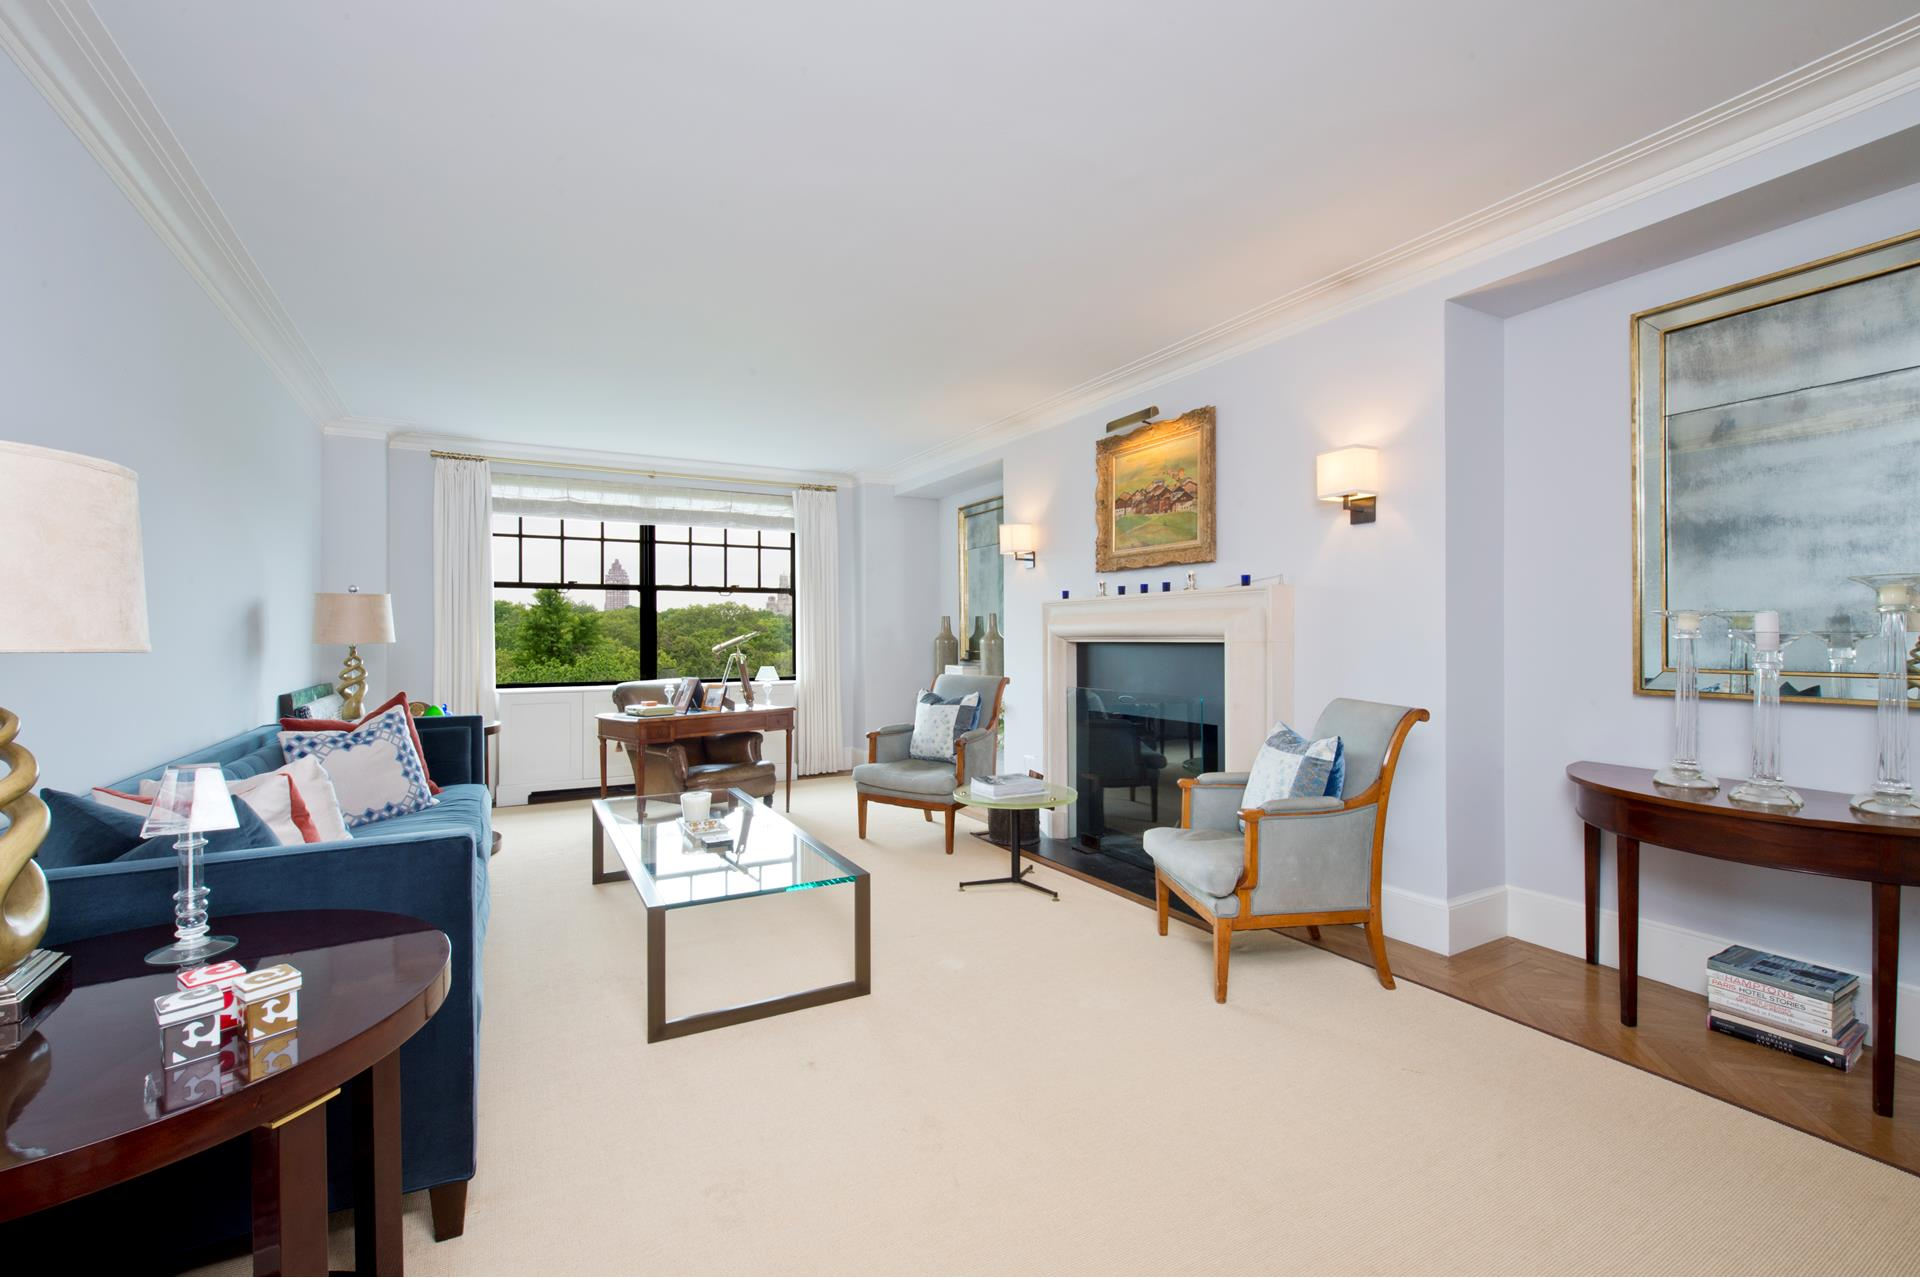 Rare opportunity to combine two apartments in order to create an expansive 12 room home with sweeping Central Park views from 11 windows.     This stunning combination features five bedrooms, five full baths, one half bath, plus two staff rooms. Five Fifth Avenue fronting rooms provide lush panoramic Central Park views extending across to the West Side. Thoughtfully maintained prewar details include   high beamed ceilings, herringbone floors, crown moldings, and a wood burning fireplace.     965 Fifth Avenue is a luxury full service cooperative designed by Emory Roth in 1938. Amenities of this fine residence include attended elevators, a fitness center, additional storage, and a bicycle room.